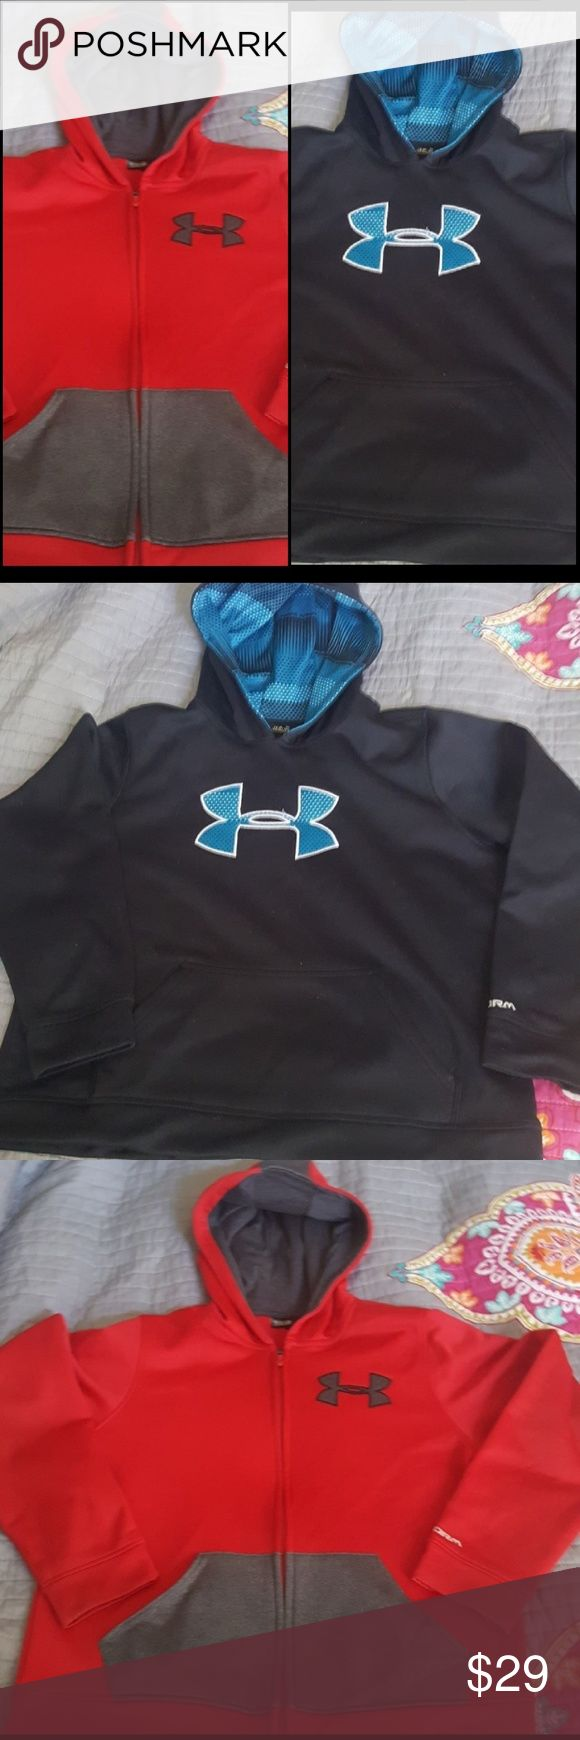 💥1 day BUNDLE SALE💥UNDER ARMOUR !!💥 💥BUNDLE SALE ENDS MONDAY!!💥 2 UNDER ARMOUR PULL OVERS!  LIKE NEW CONDITION! Under Armour Jackets & Coats